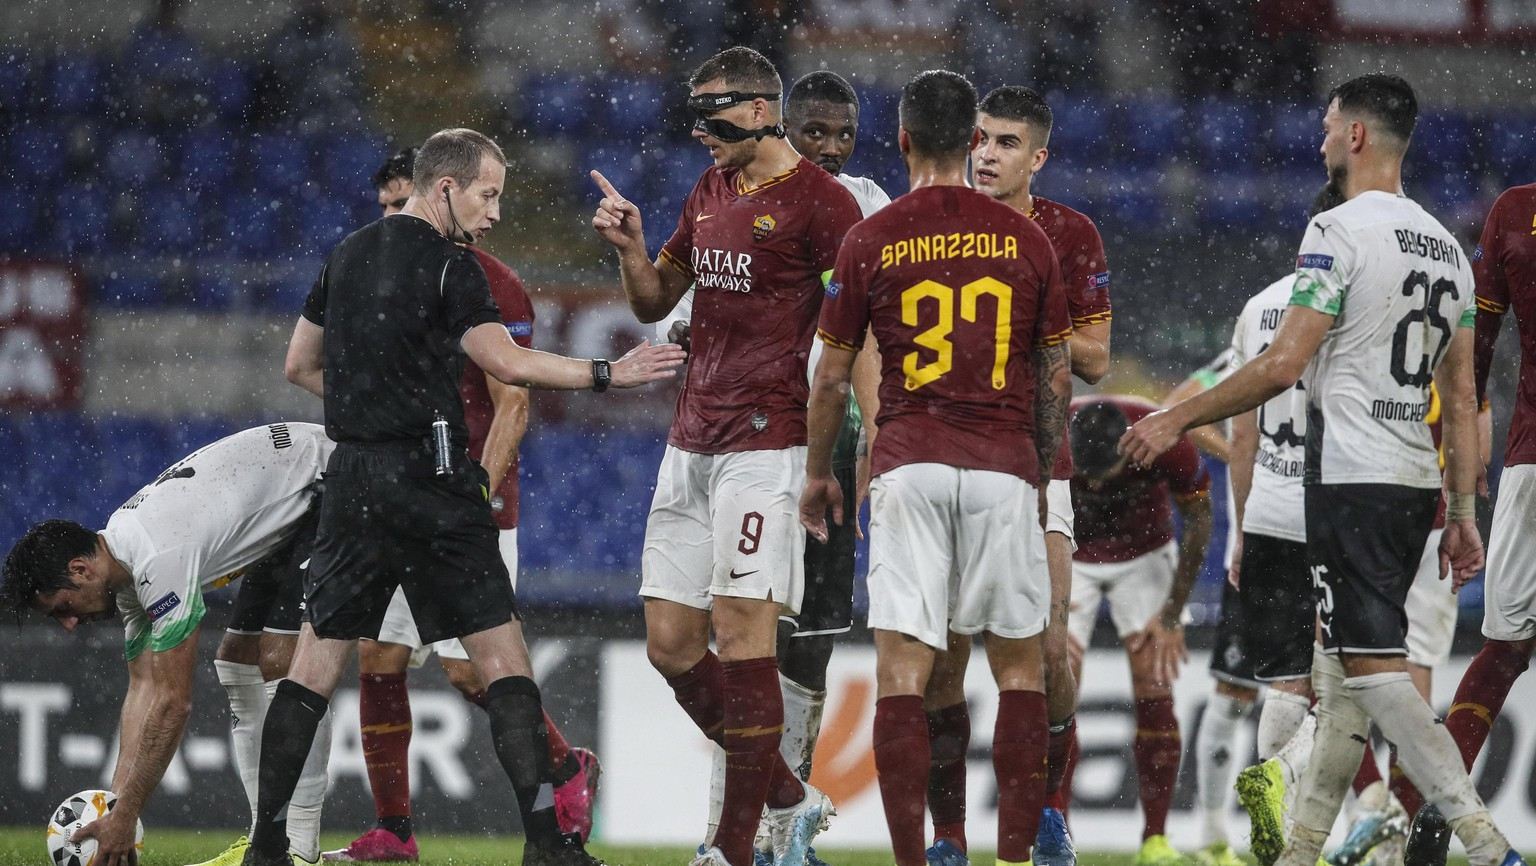 epa07947145 Roma's Edin Dzeko (3L) argues with Scottish referee William Collum (2L) during the UEFA Europa League group J soccer match between AS Roma and Borussia Moenchengladbach at the Olimpico stadium in Rome, Italy, 24 October 2019.  EPA/GIUSEPPE LAMI